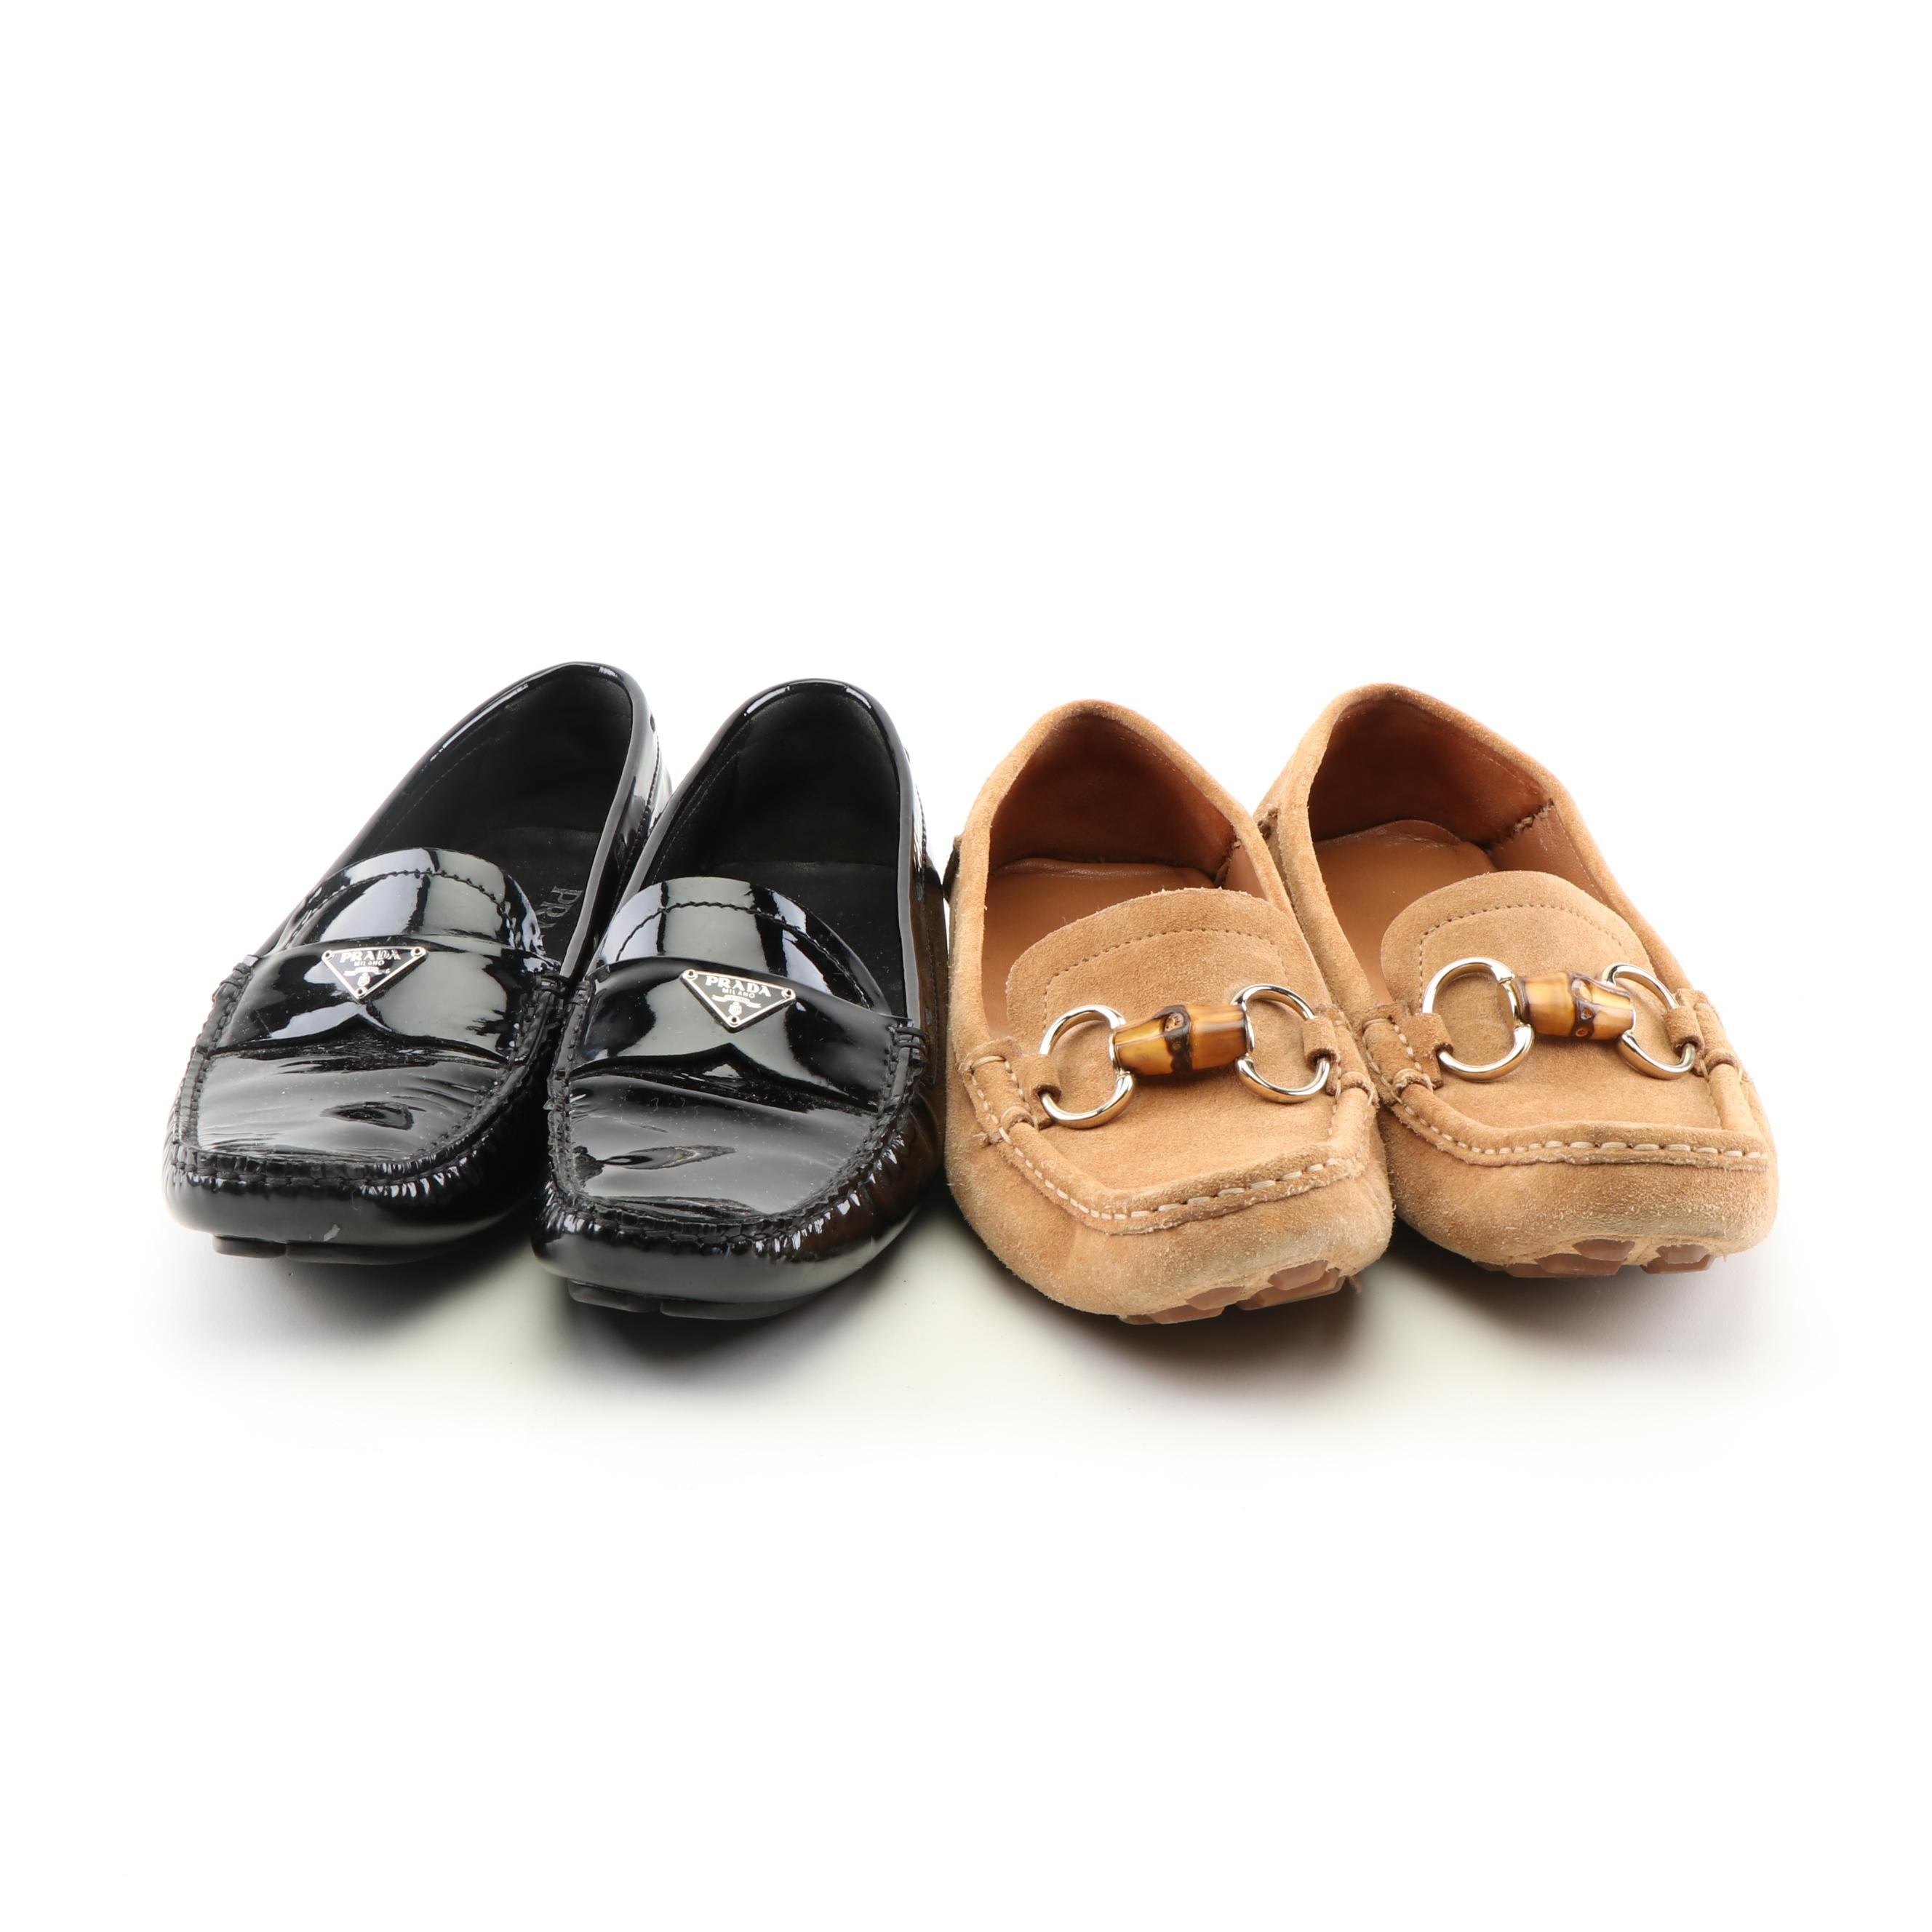 Prada Black Patent Leather and Gucci Tan Suede Bamboo Bit Loafers